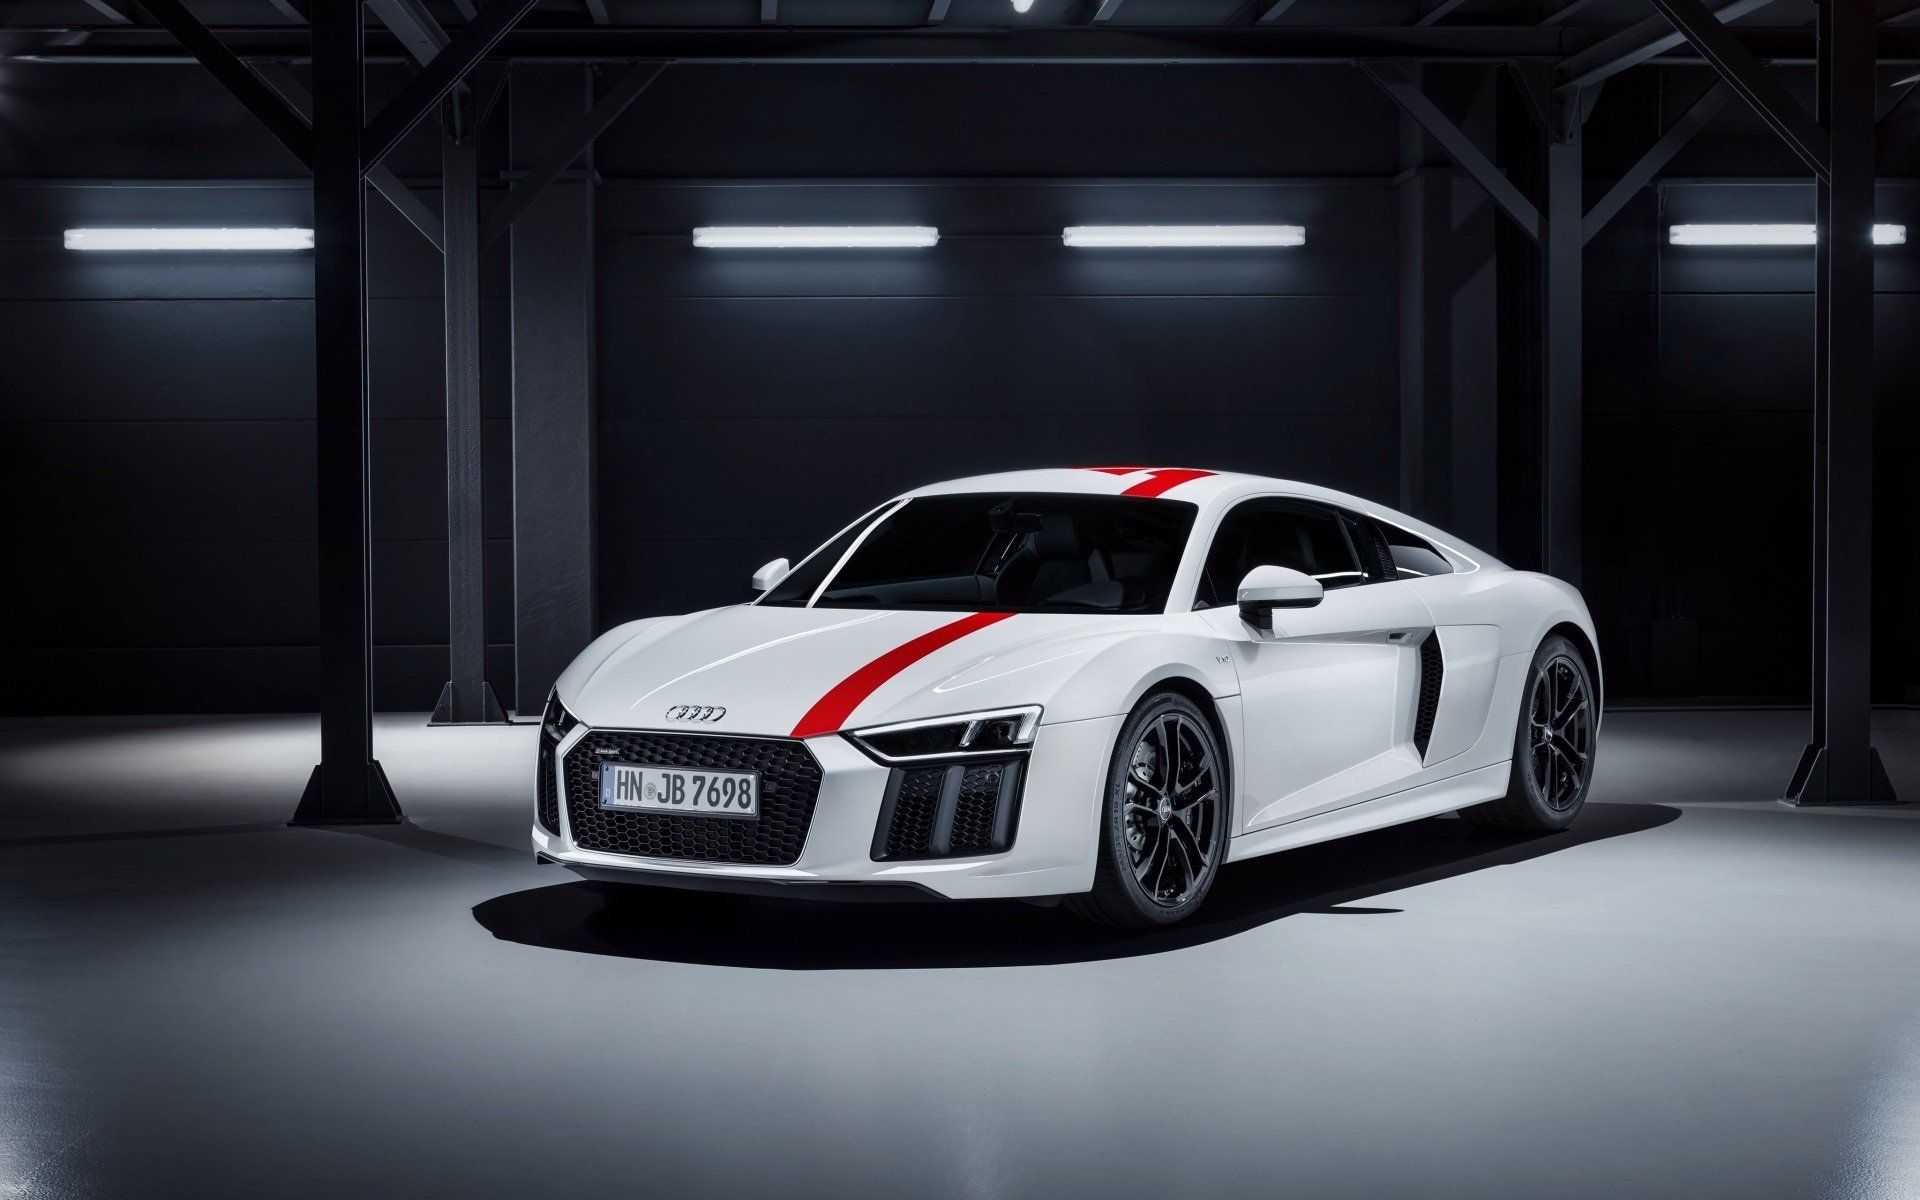 Audi R8 Great And Rich White Luxurious Car Wallpaper Audi R8 Great